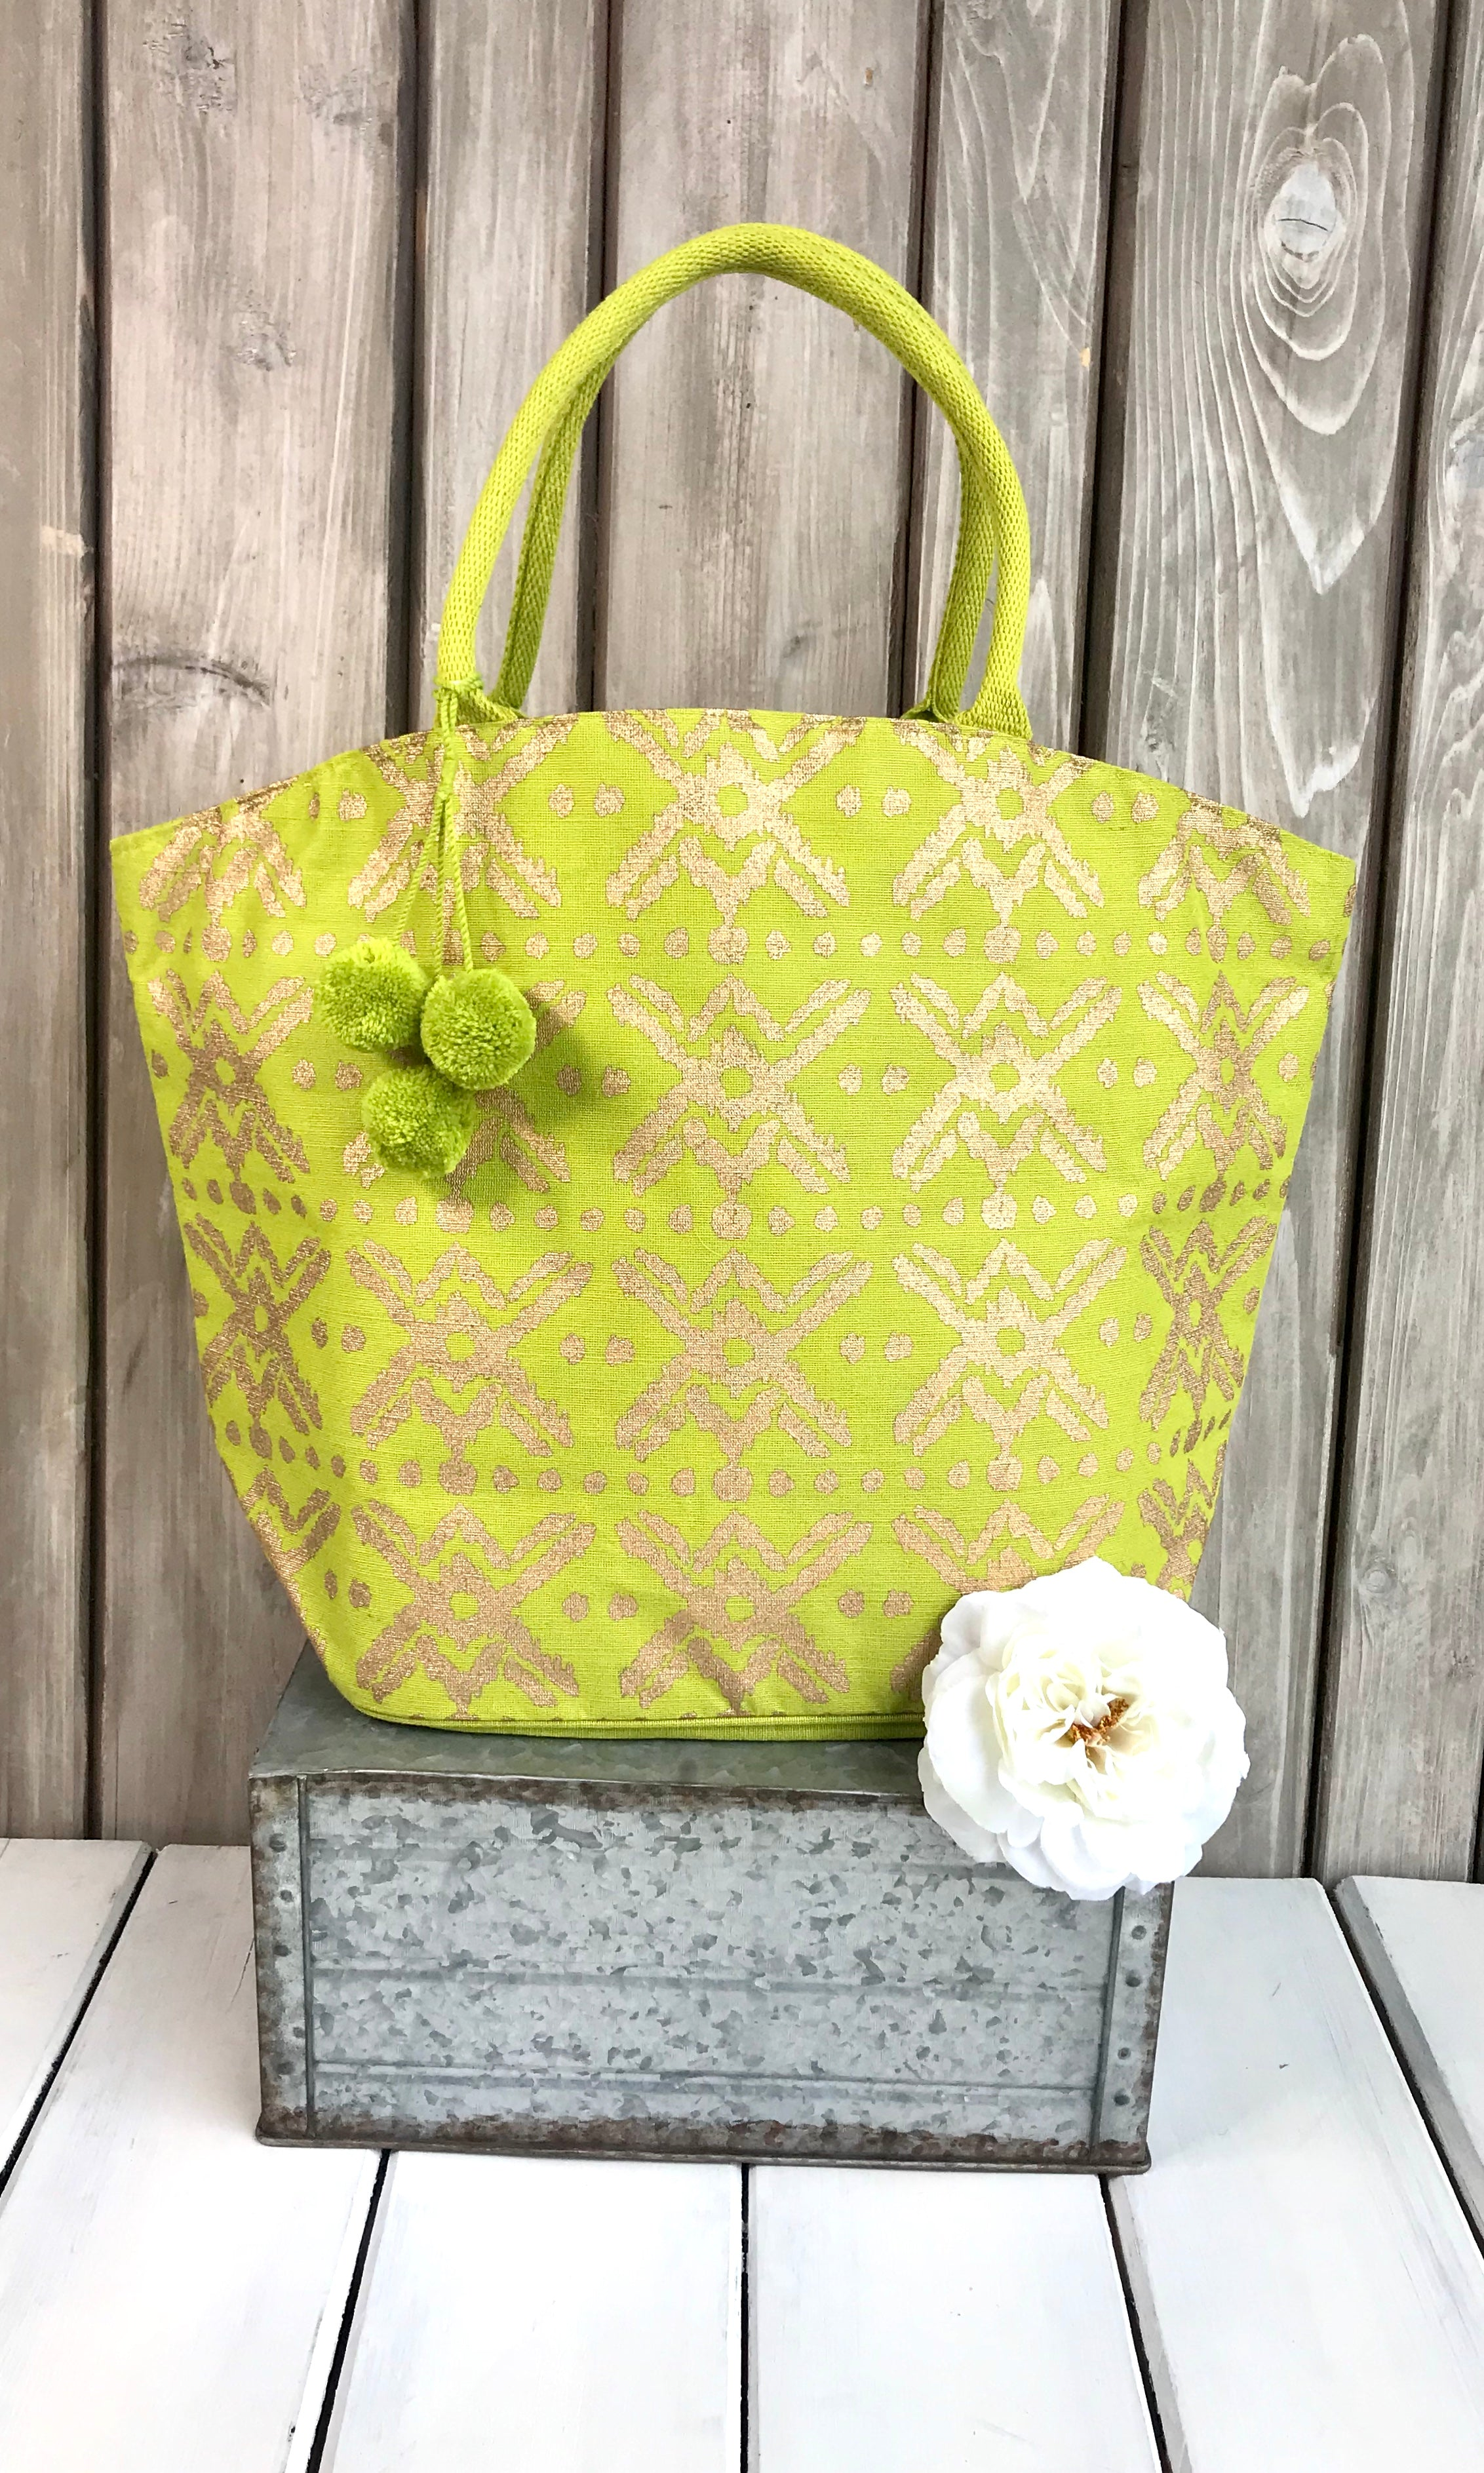 Shimmer Jute Totes